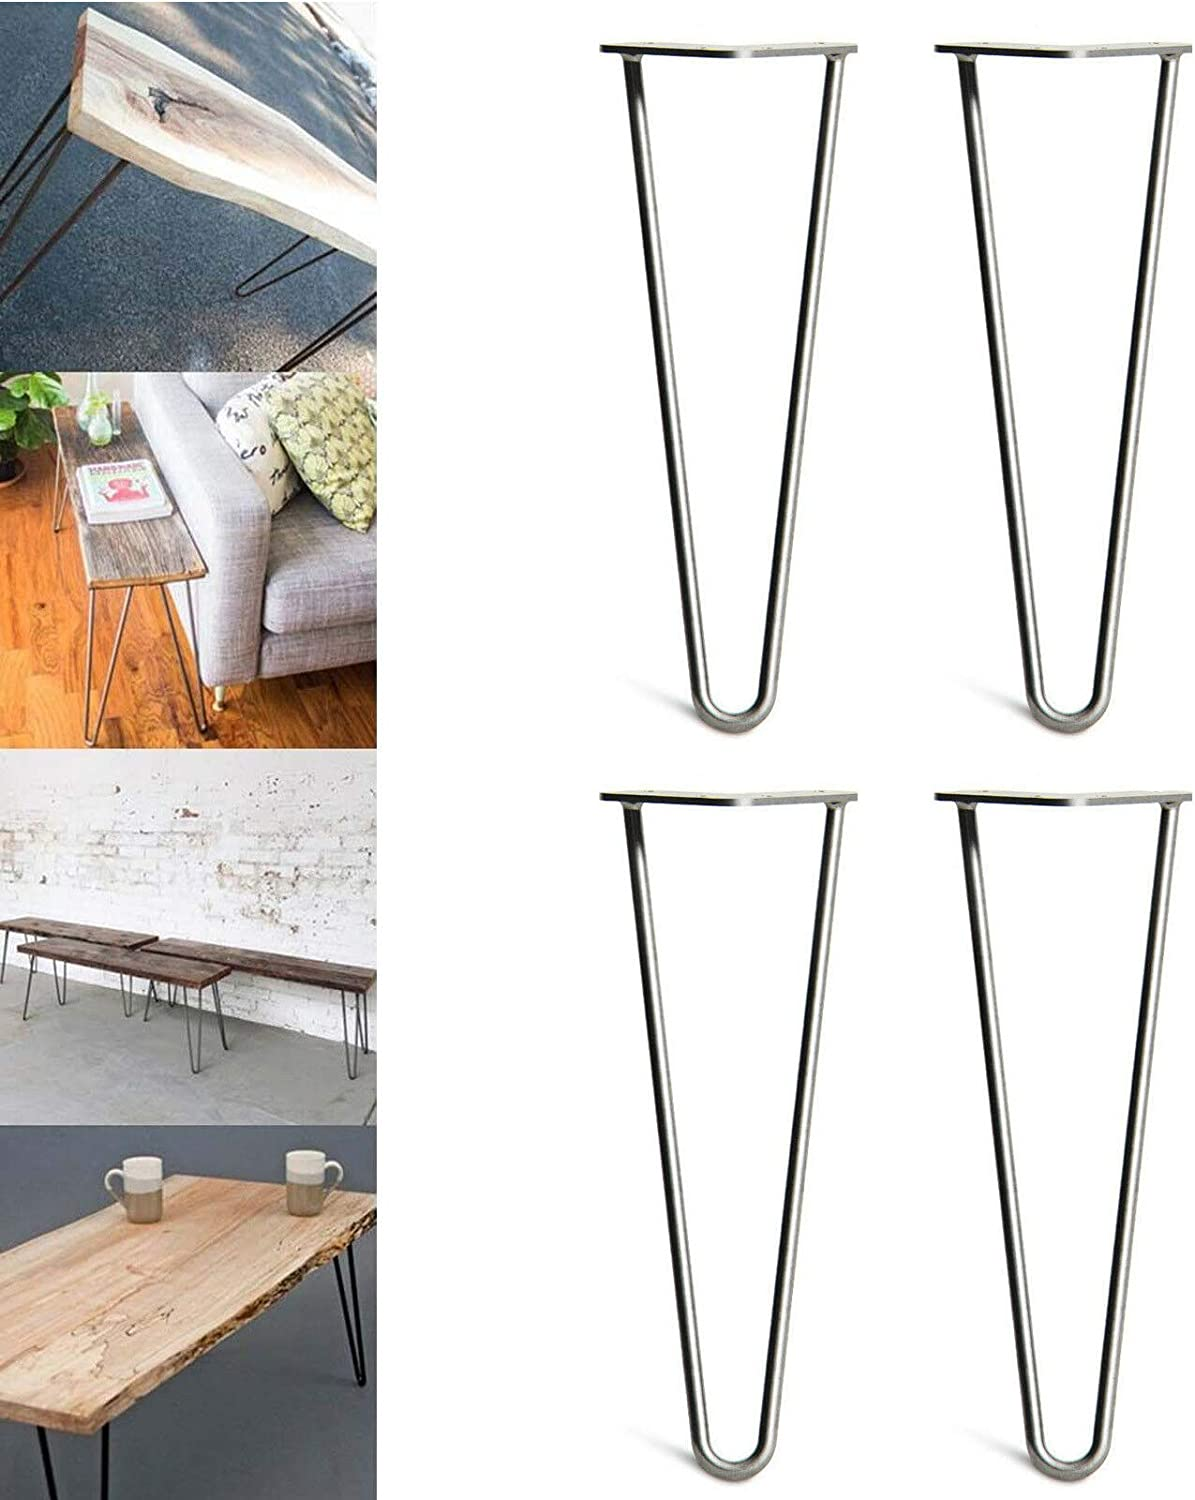 hairpin table legs raw steel UK product retro industrial design 6 sizes